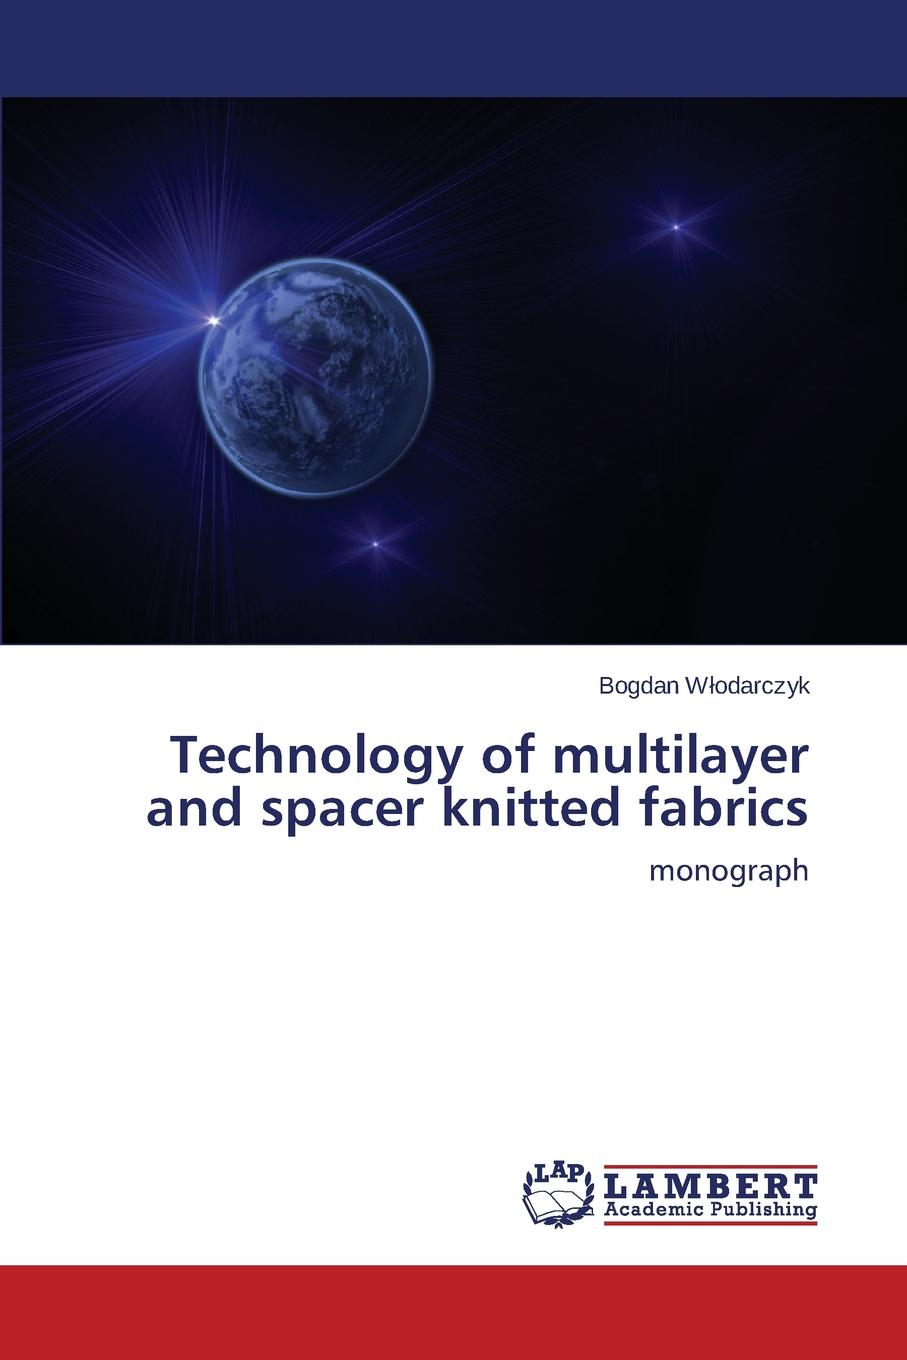 Włodarczyk Bogdan Technology of multilayer and spacer knitted fabrics gail tsukiyama language of threads